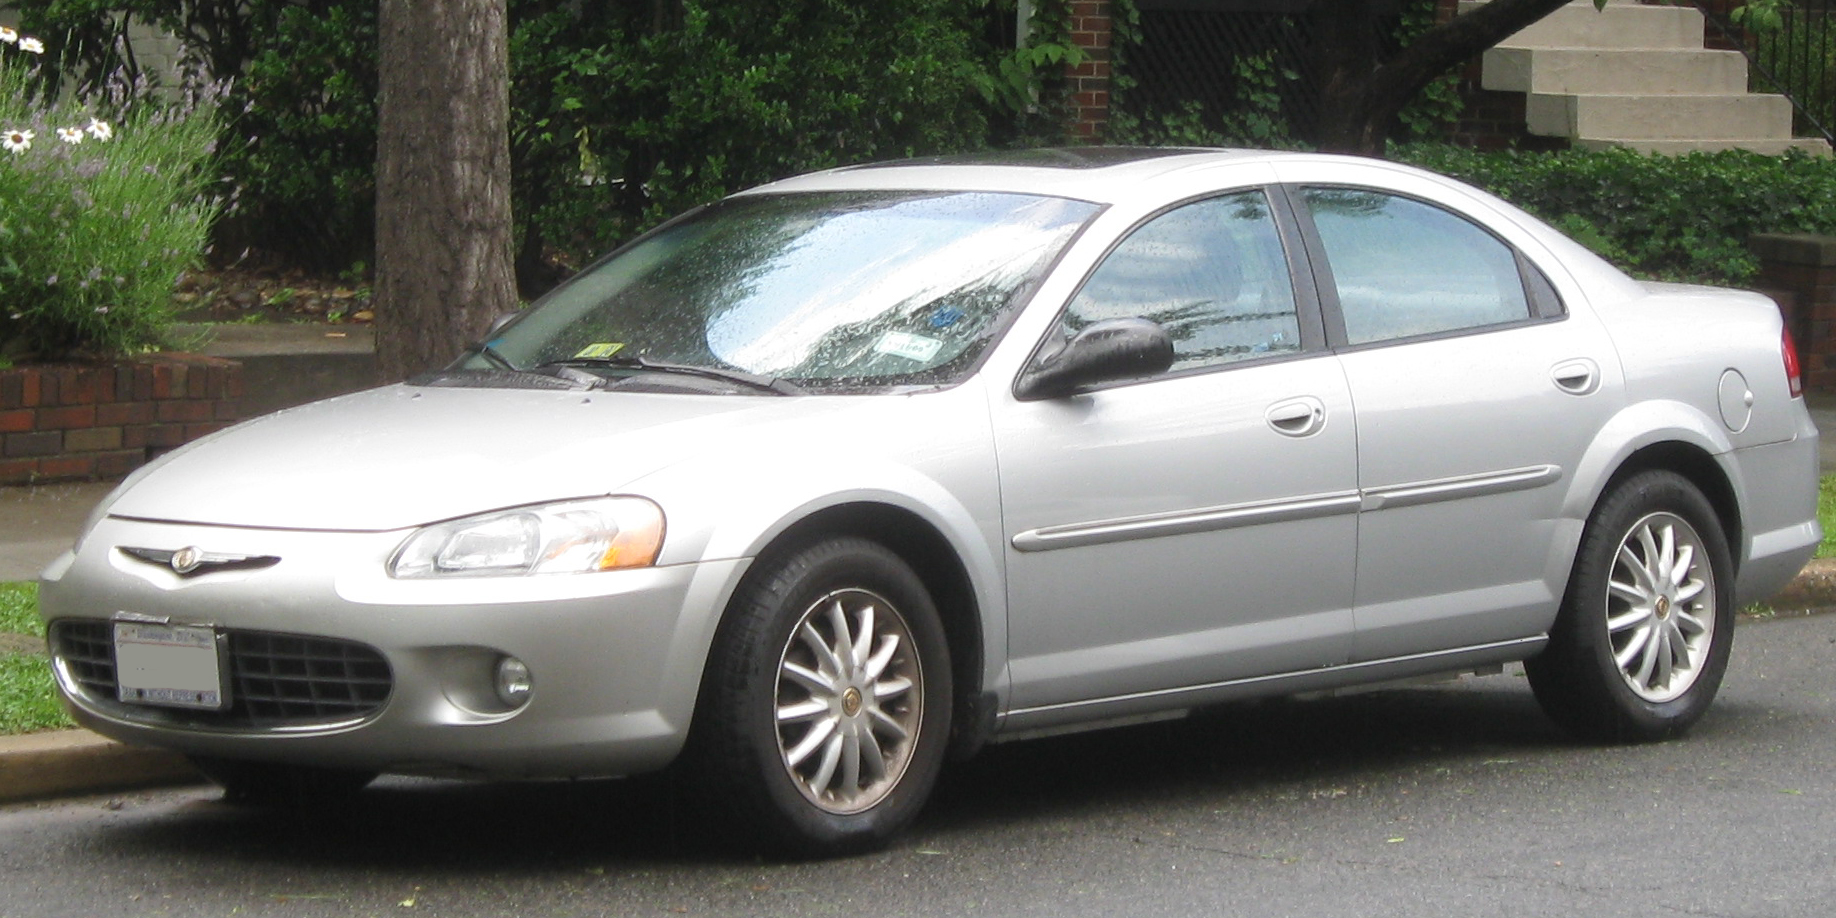 Chrysler Sebring #2